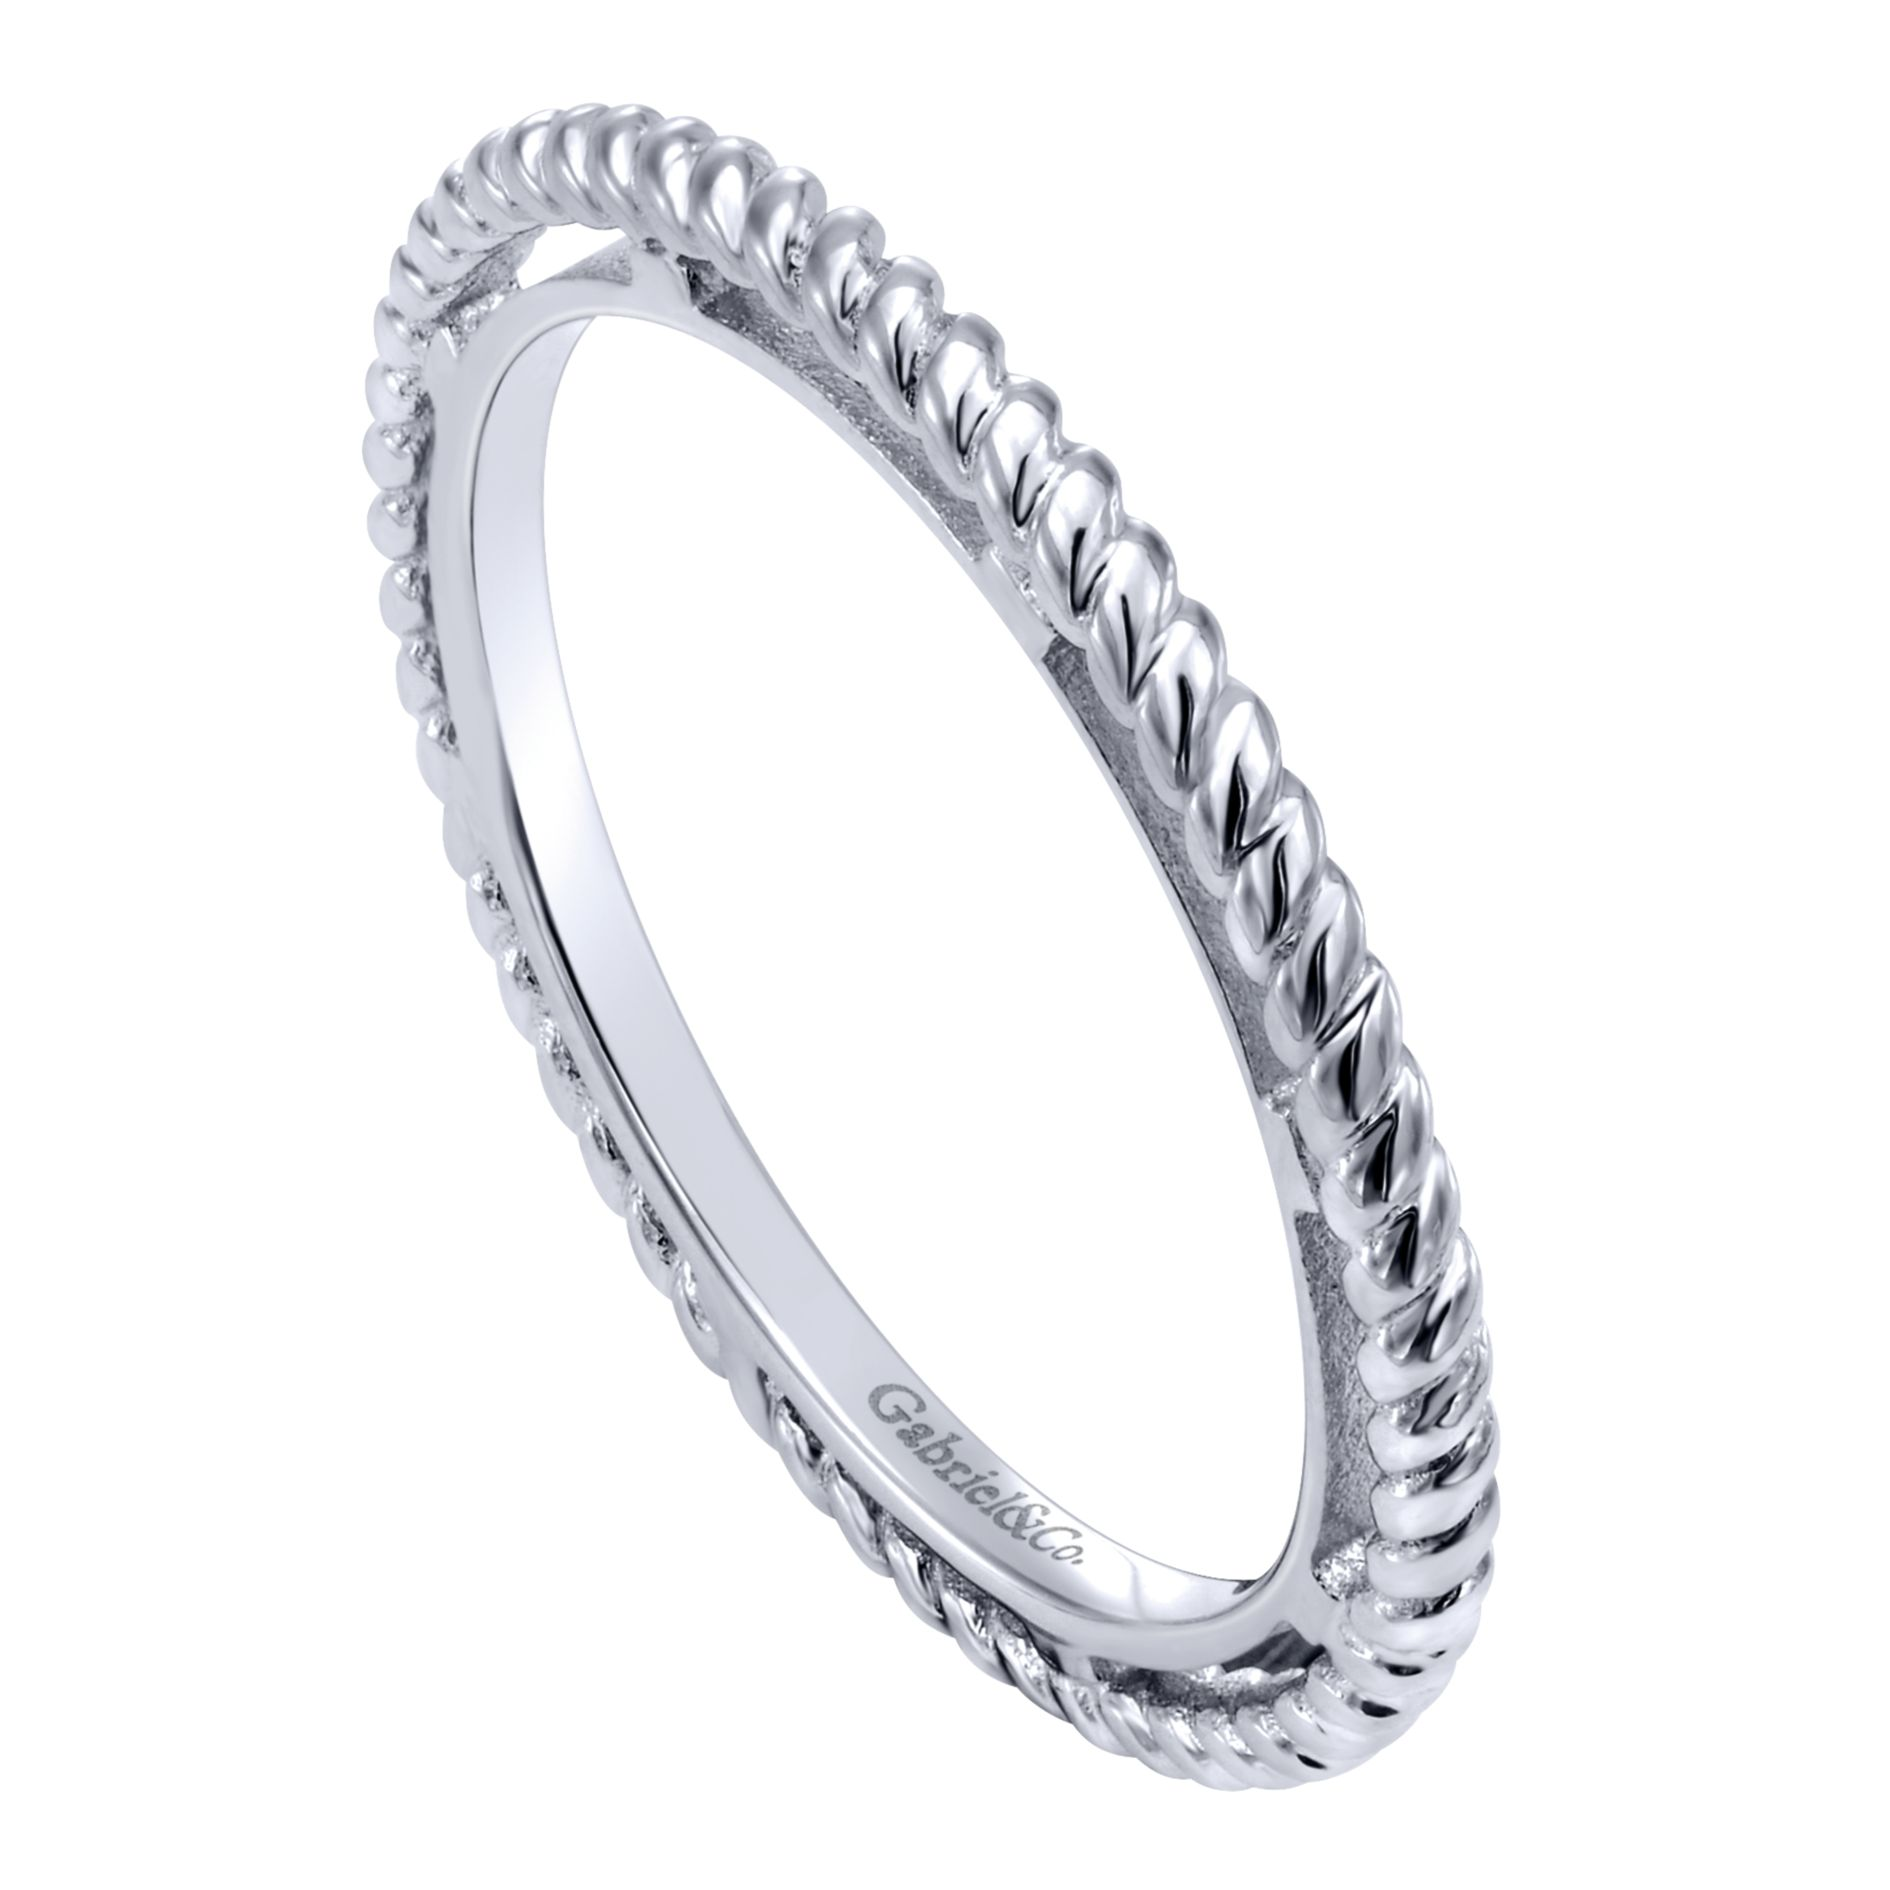 Rings - SILVER STACKABLE LADIES RING - image #3